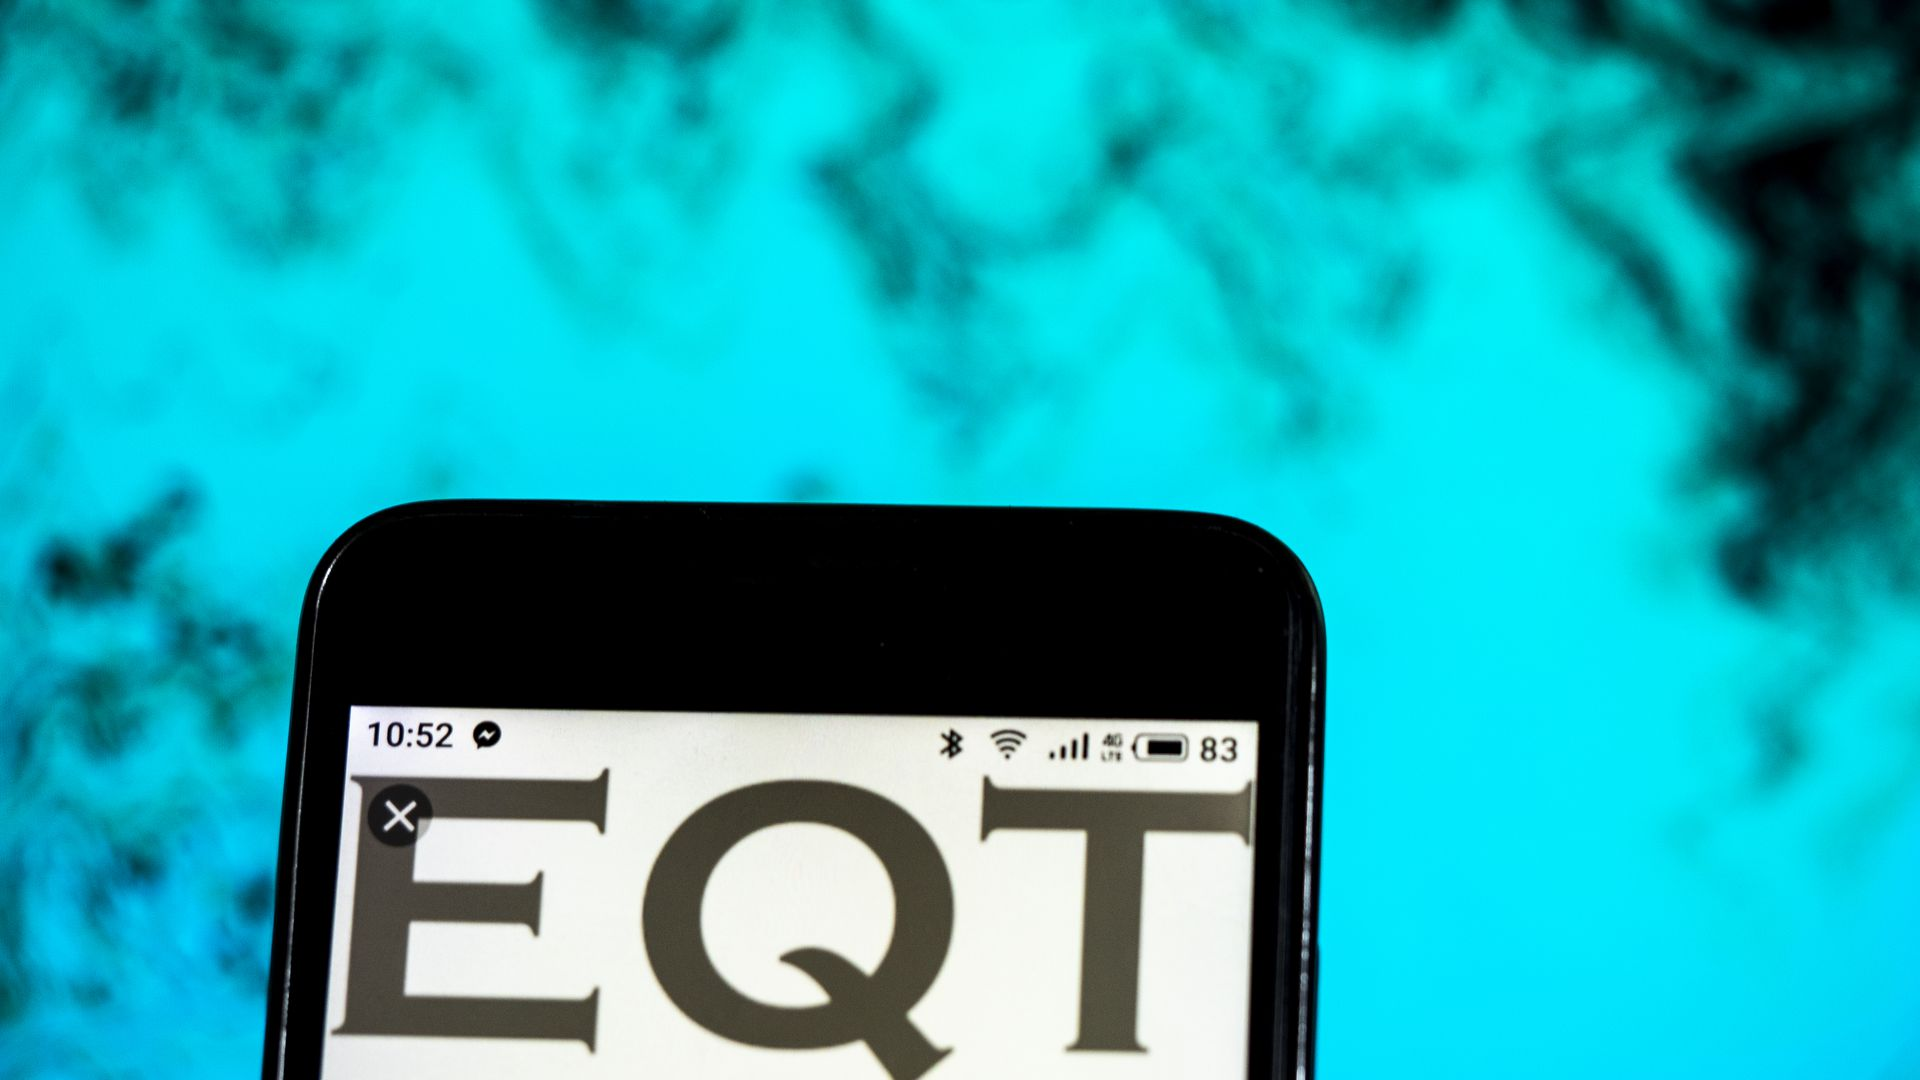 EQT Partners Private equity company logo seen displayed on a smart phone.